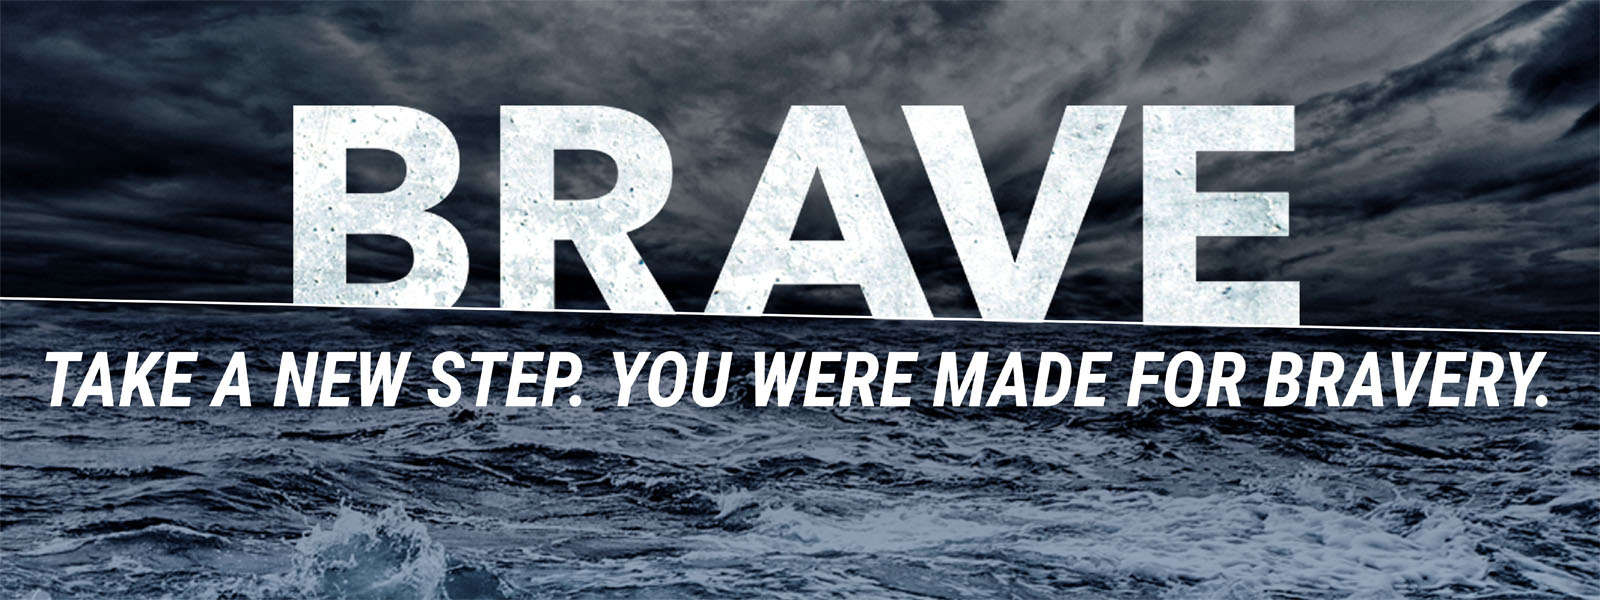 Take a new step. You were made for bravery.